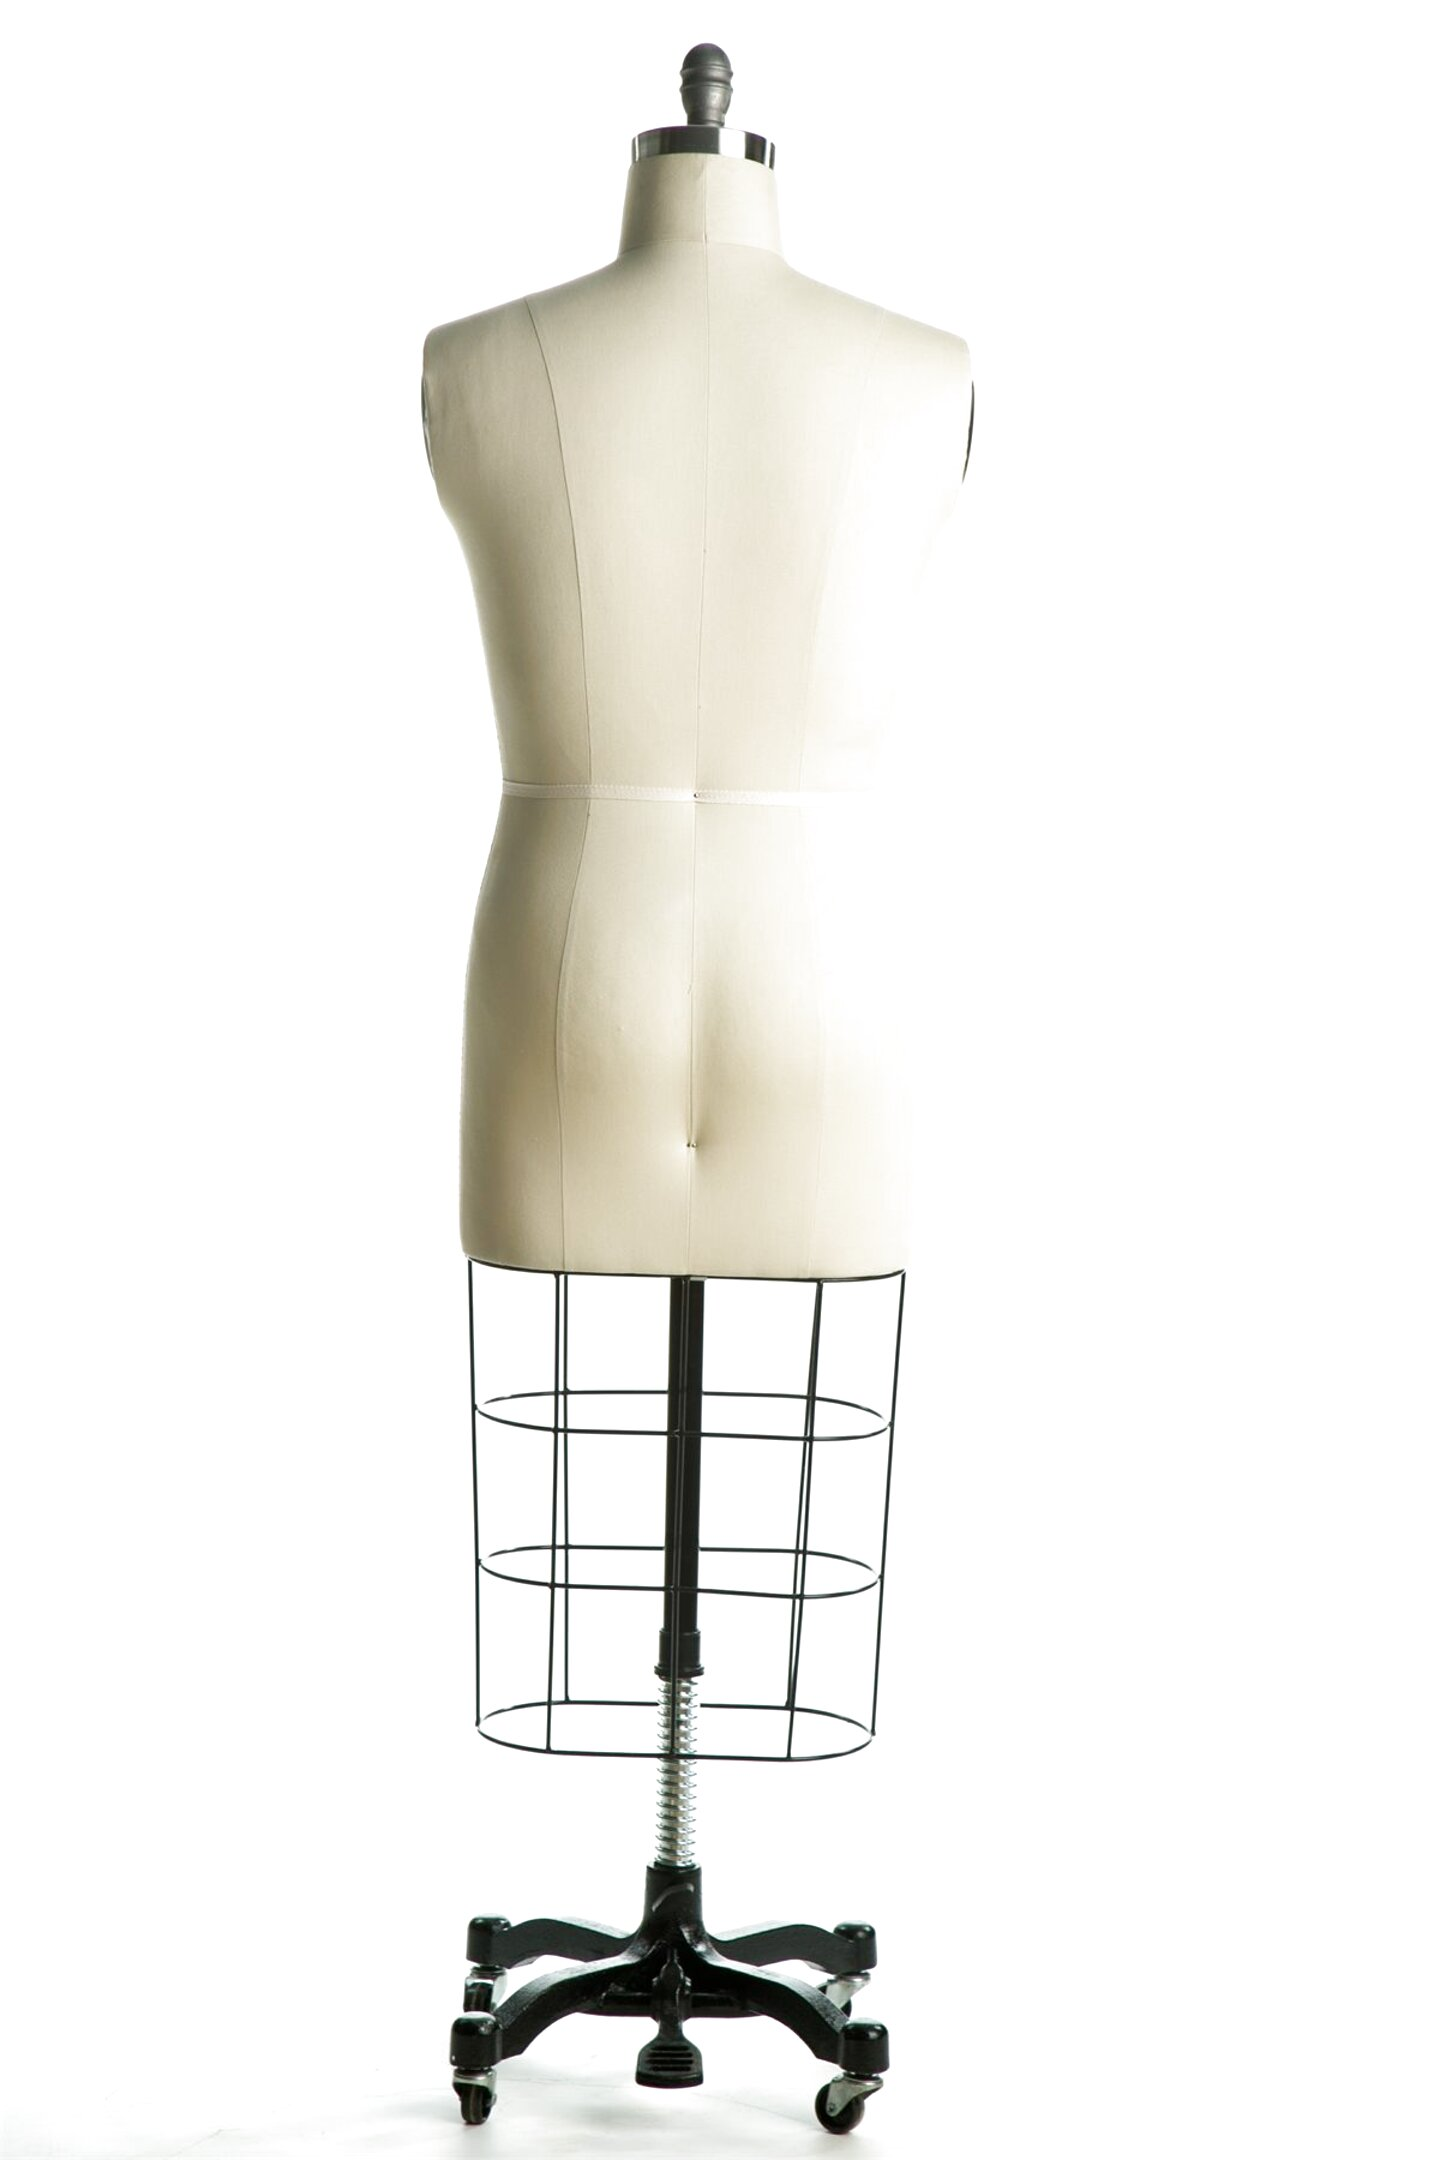 Male Dress Form Mannequin for sale | Only 2 left at -75%